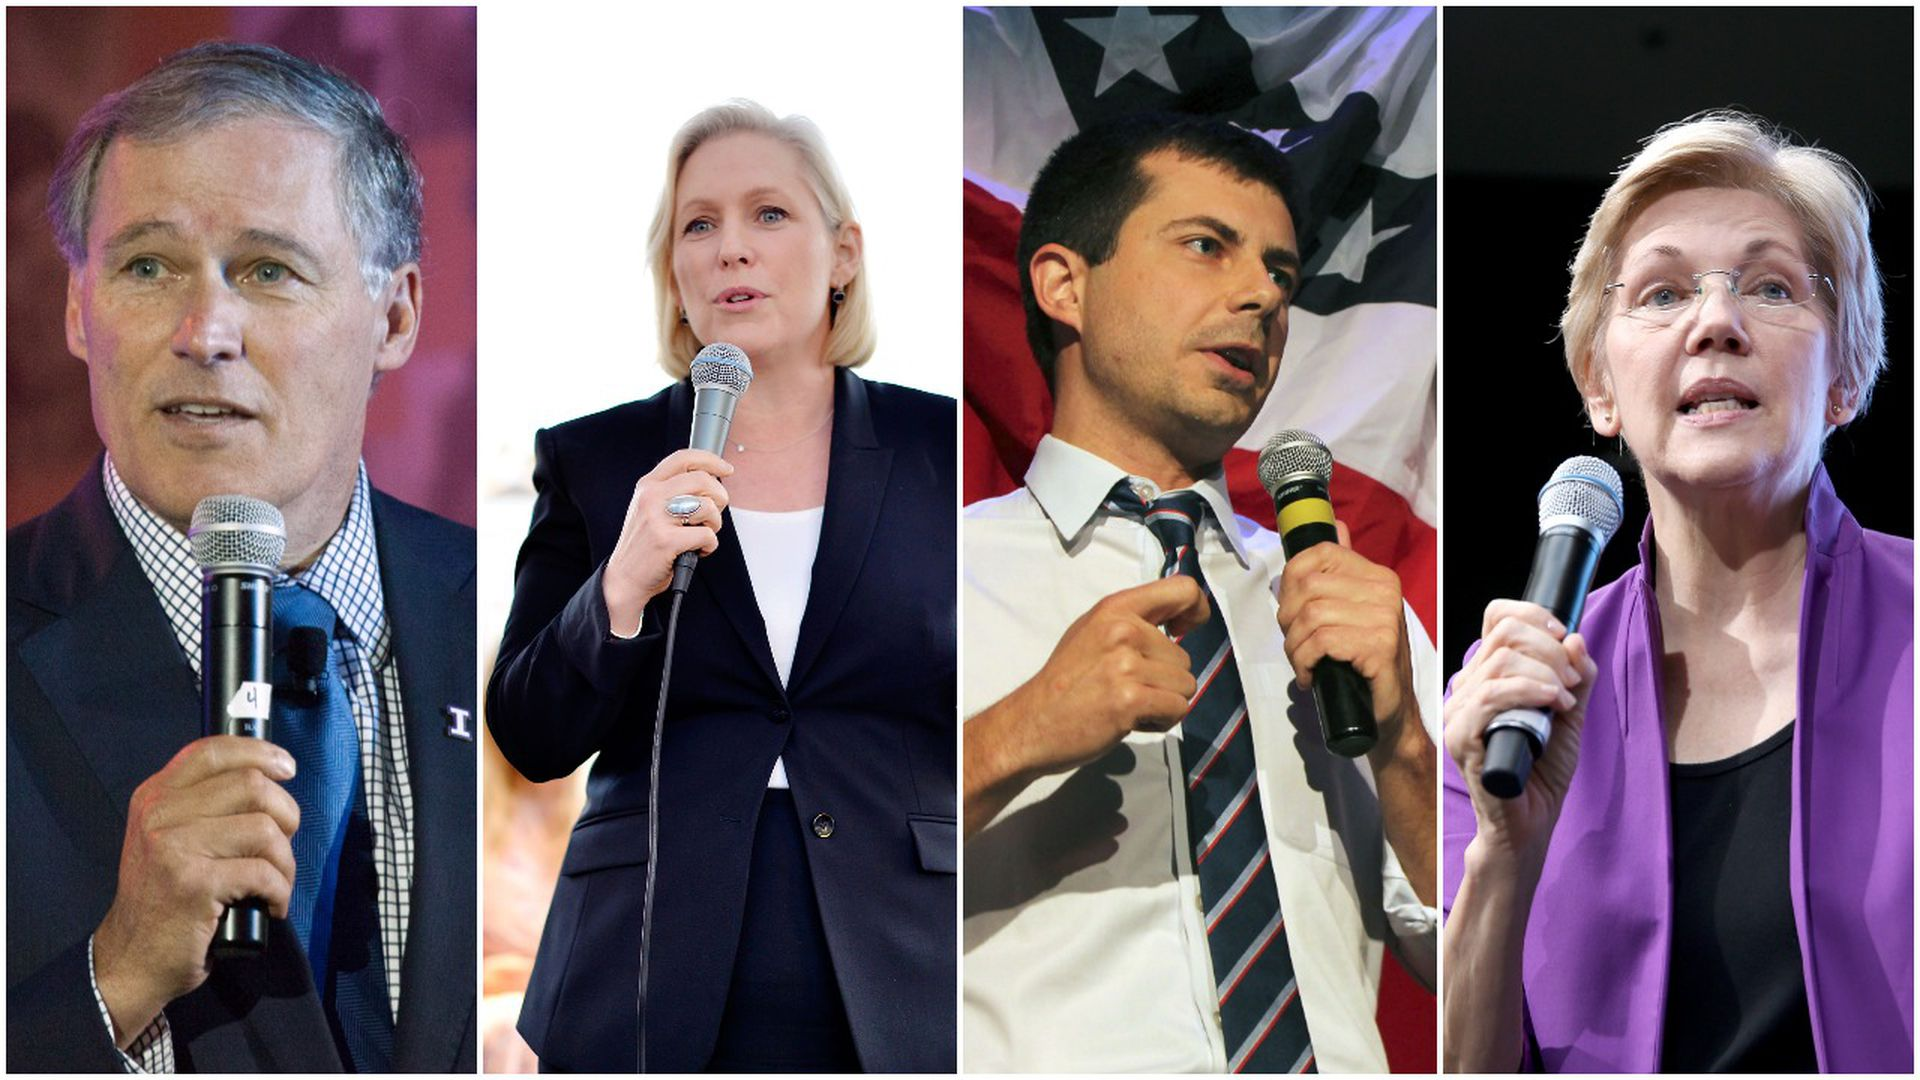 This image is a four-way split screen of Democratic candidates in this order, from left to right: Inslee, Gillibrand, Buttigieg, and Warren.